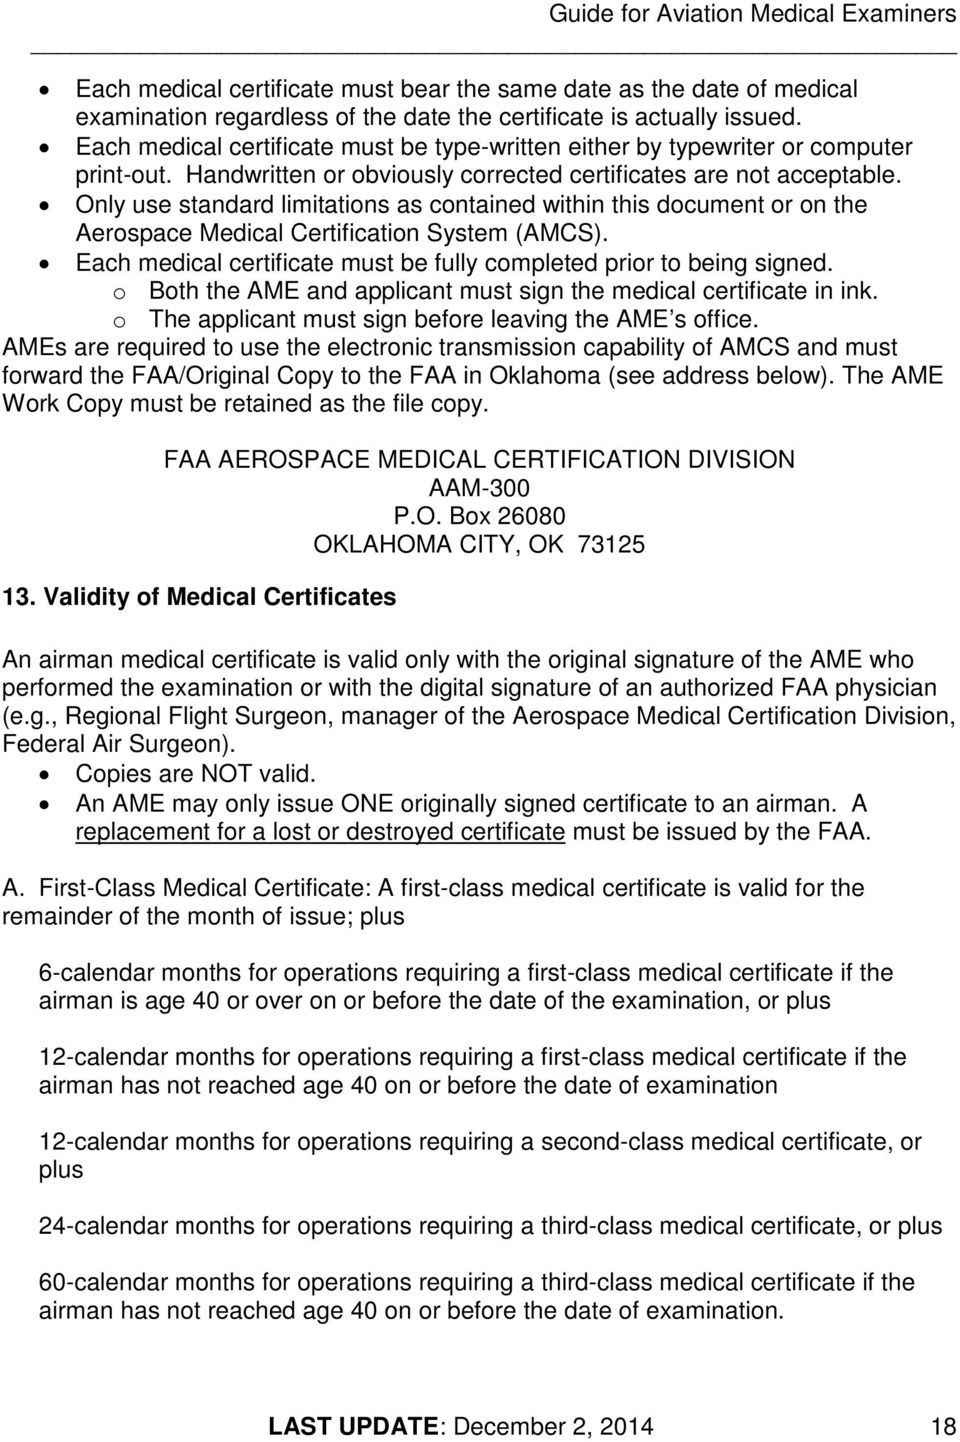 Only use standard limitations as contained within this document or on the Aerospace Medical Certification System (AMCS). Each medical certificate must be fully completed prior to being signed.